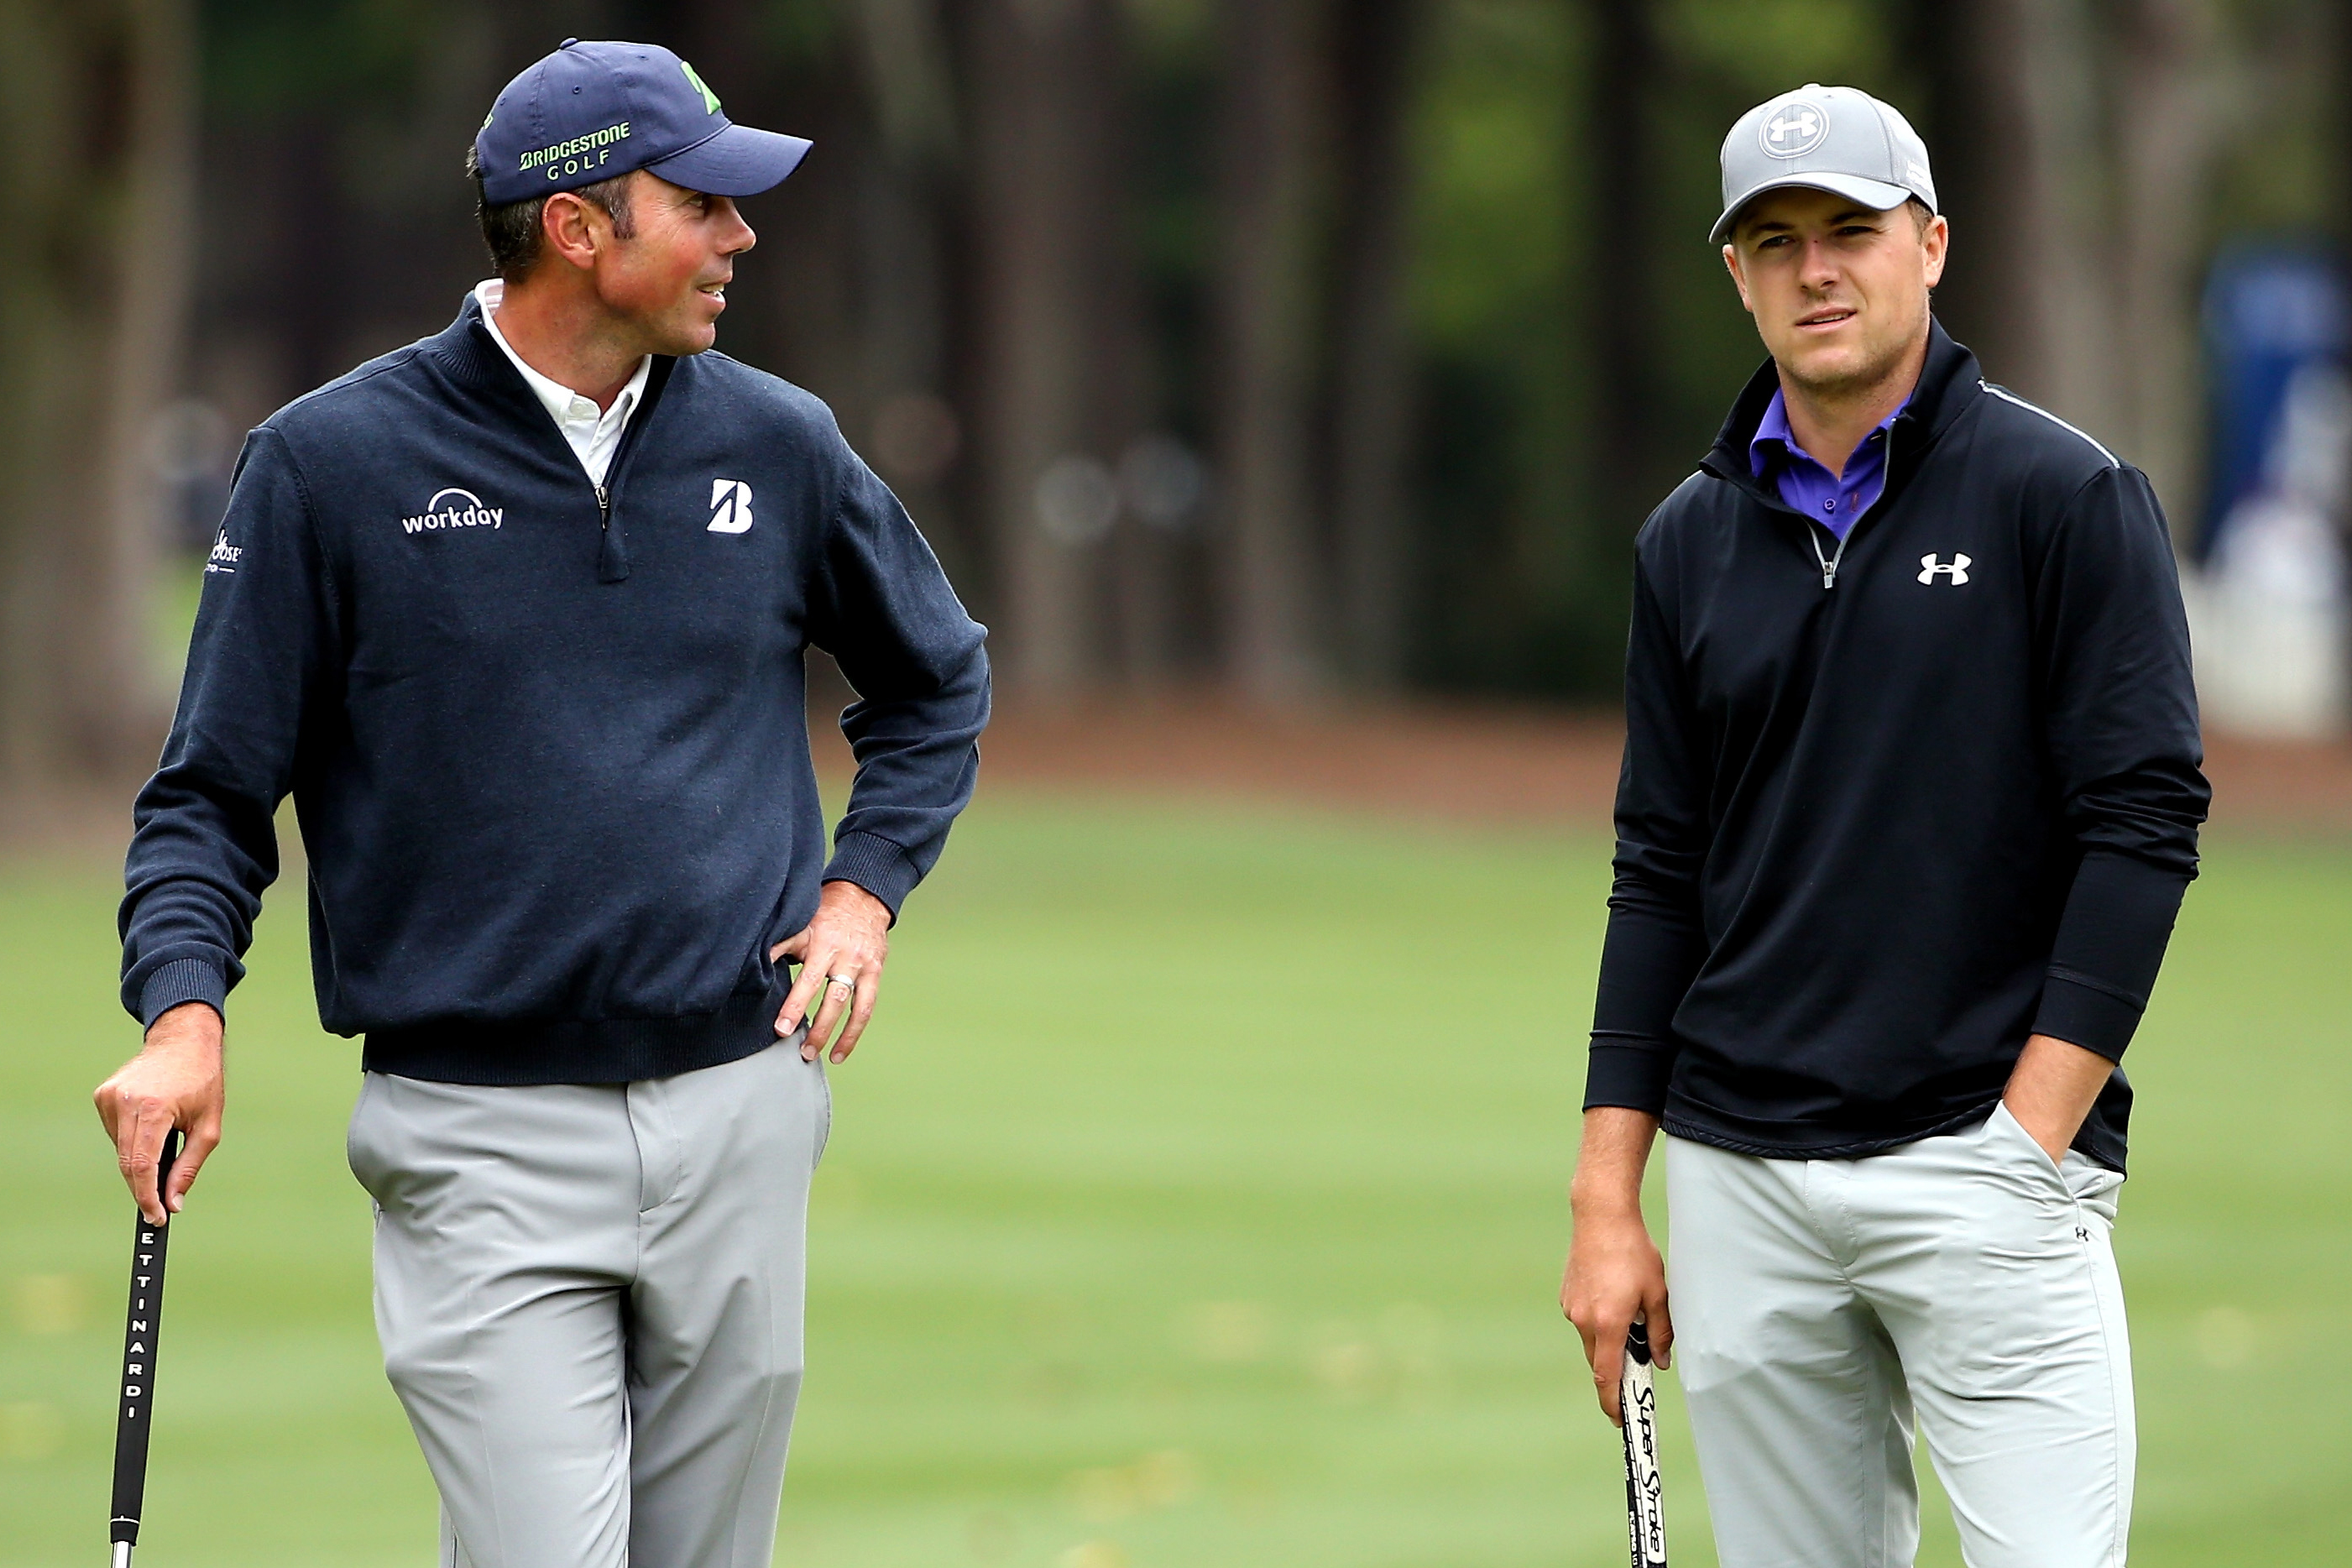 Jordan Spieth admits to getting his butt kicked by Matt Kuchar on day one (Photo: Getty Images)